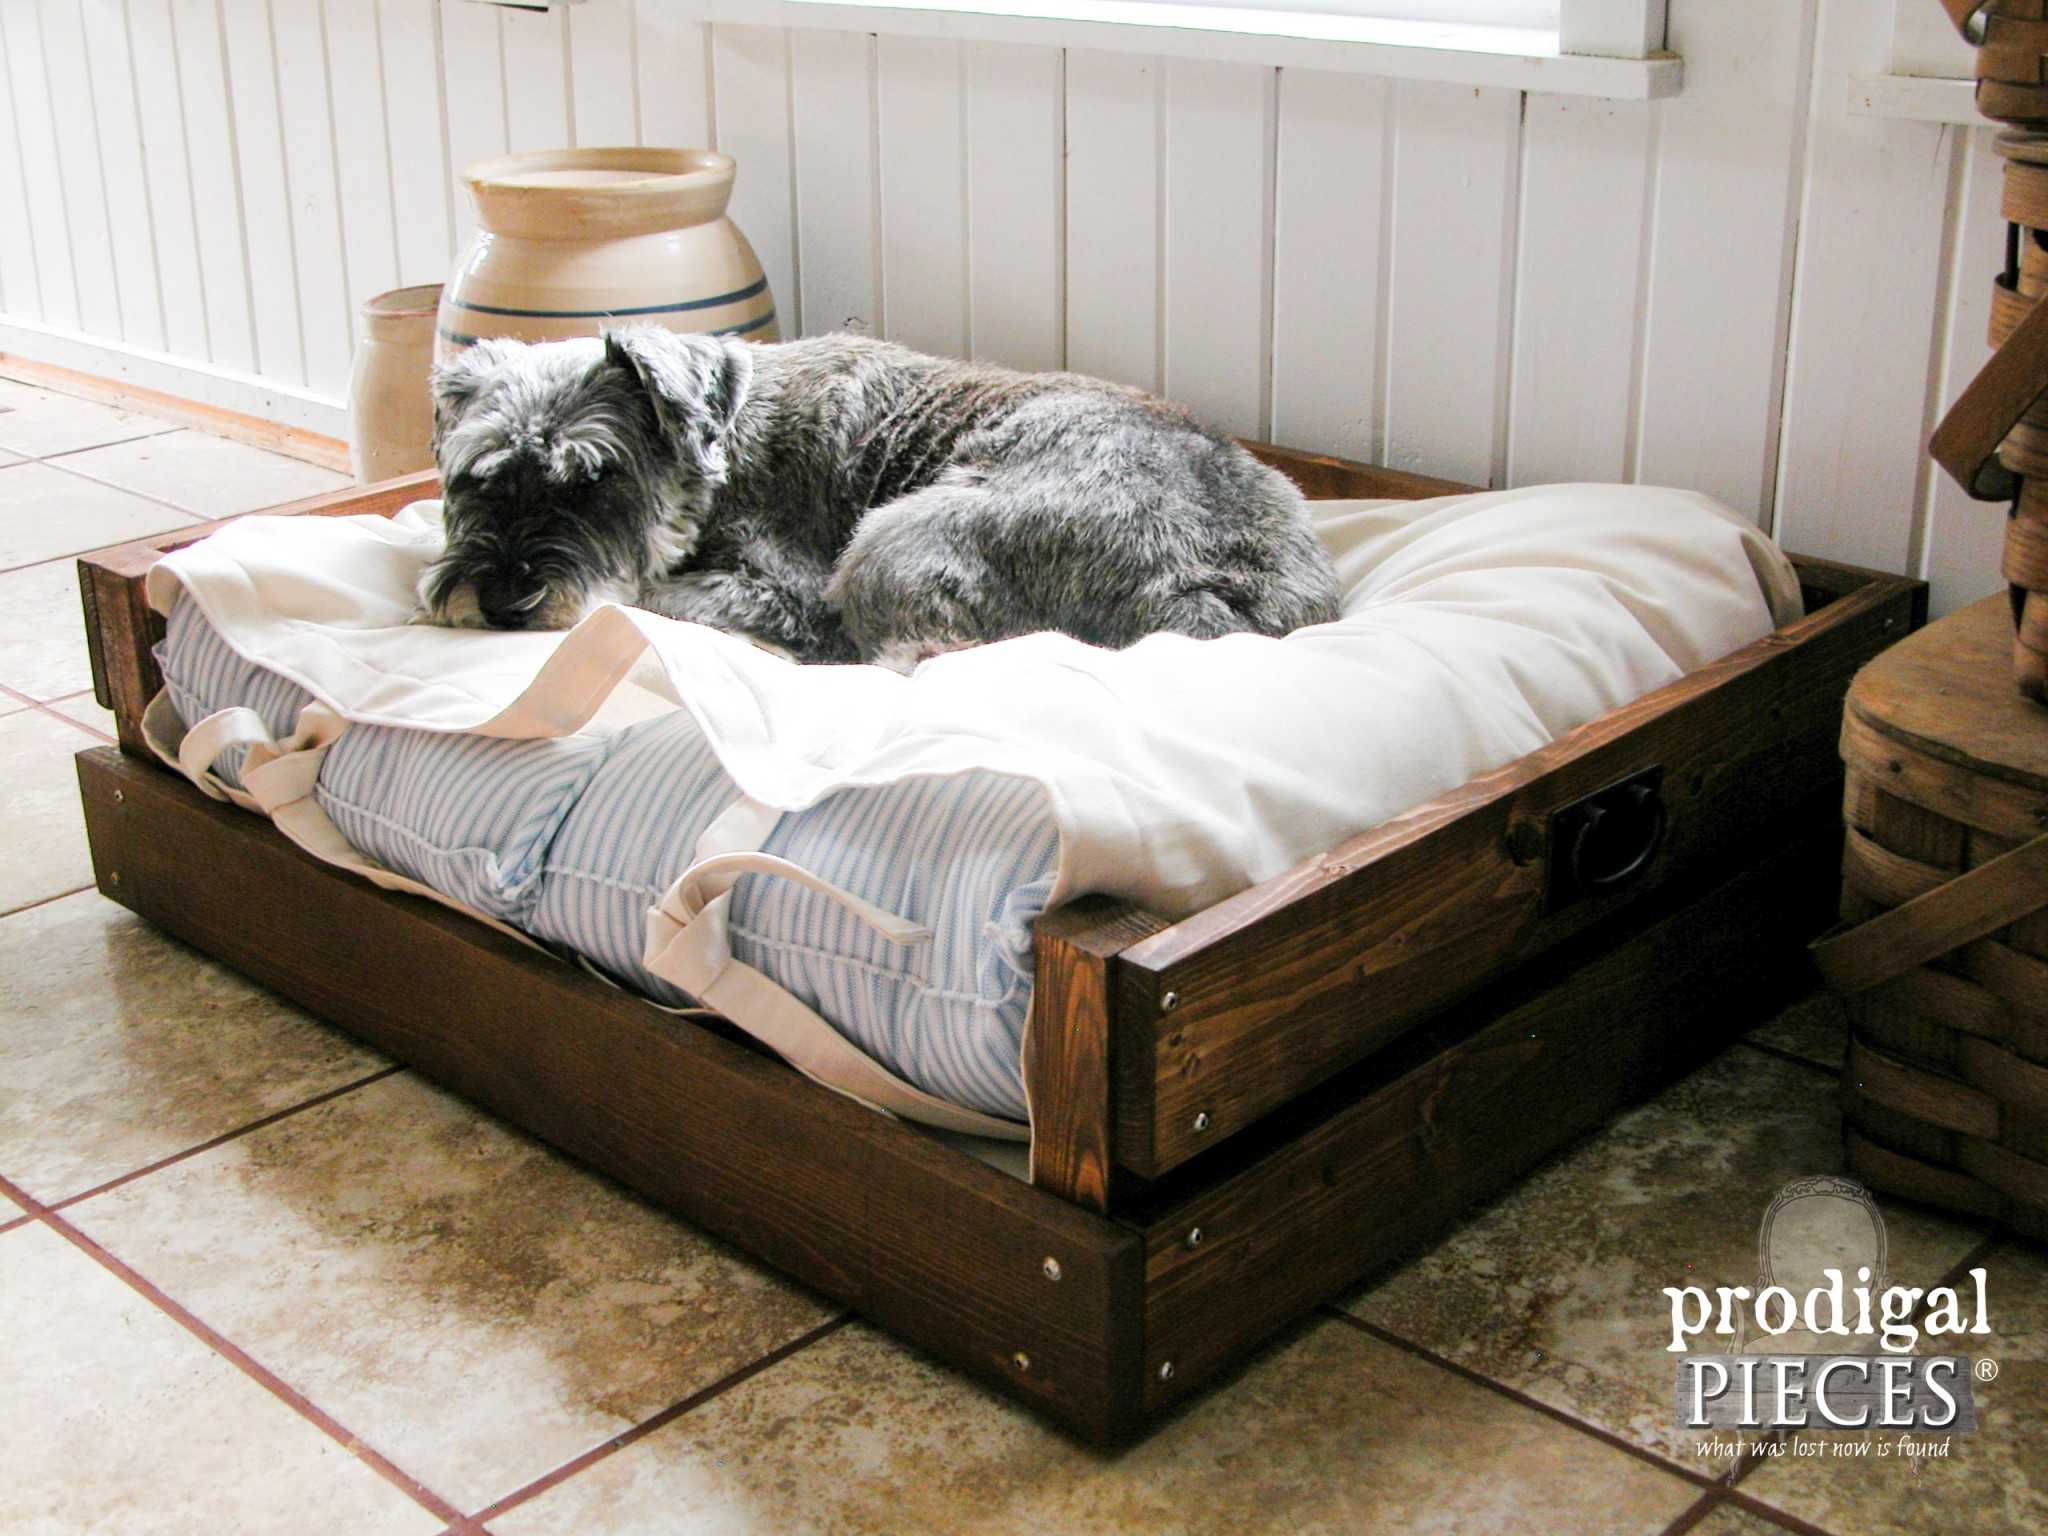 dog laying in diy pet bed by prodigal pieces wwwprodigalpiecescm - Dog Bed Frame